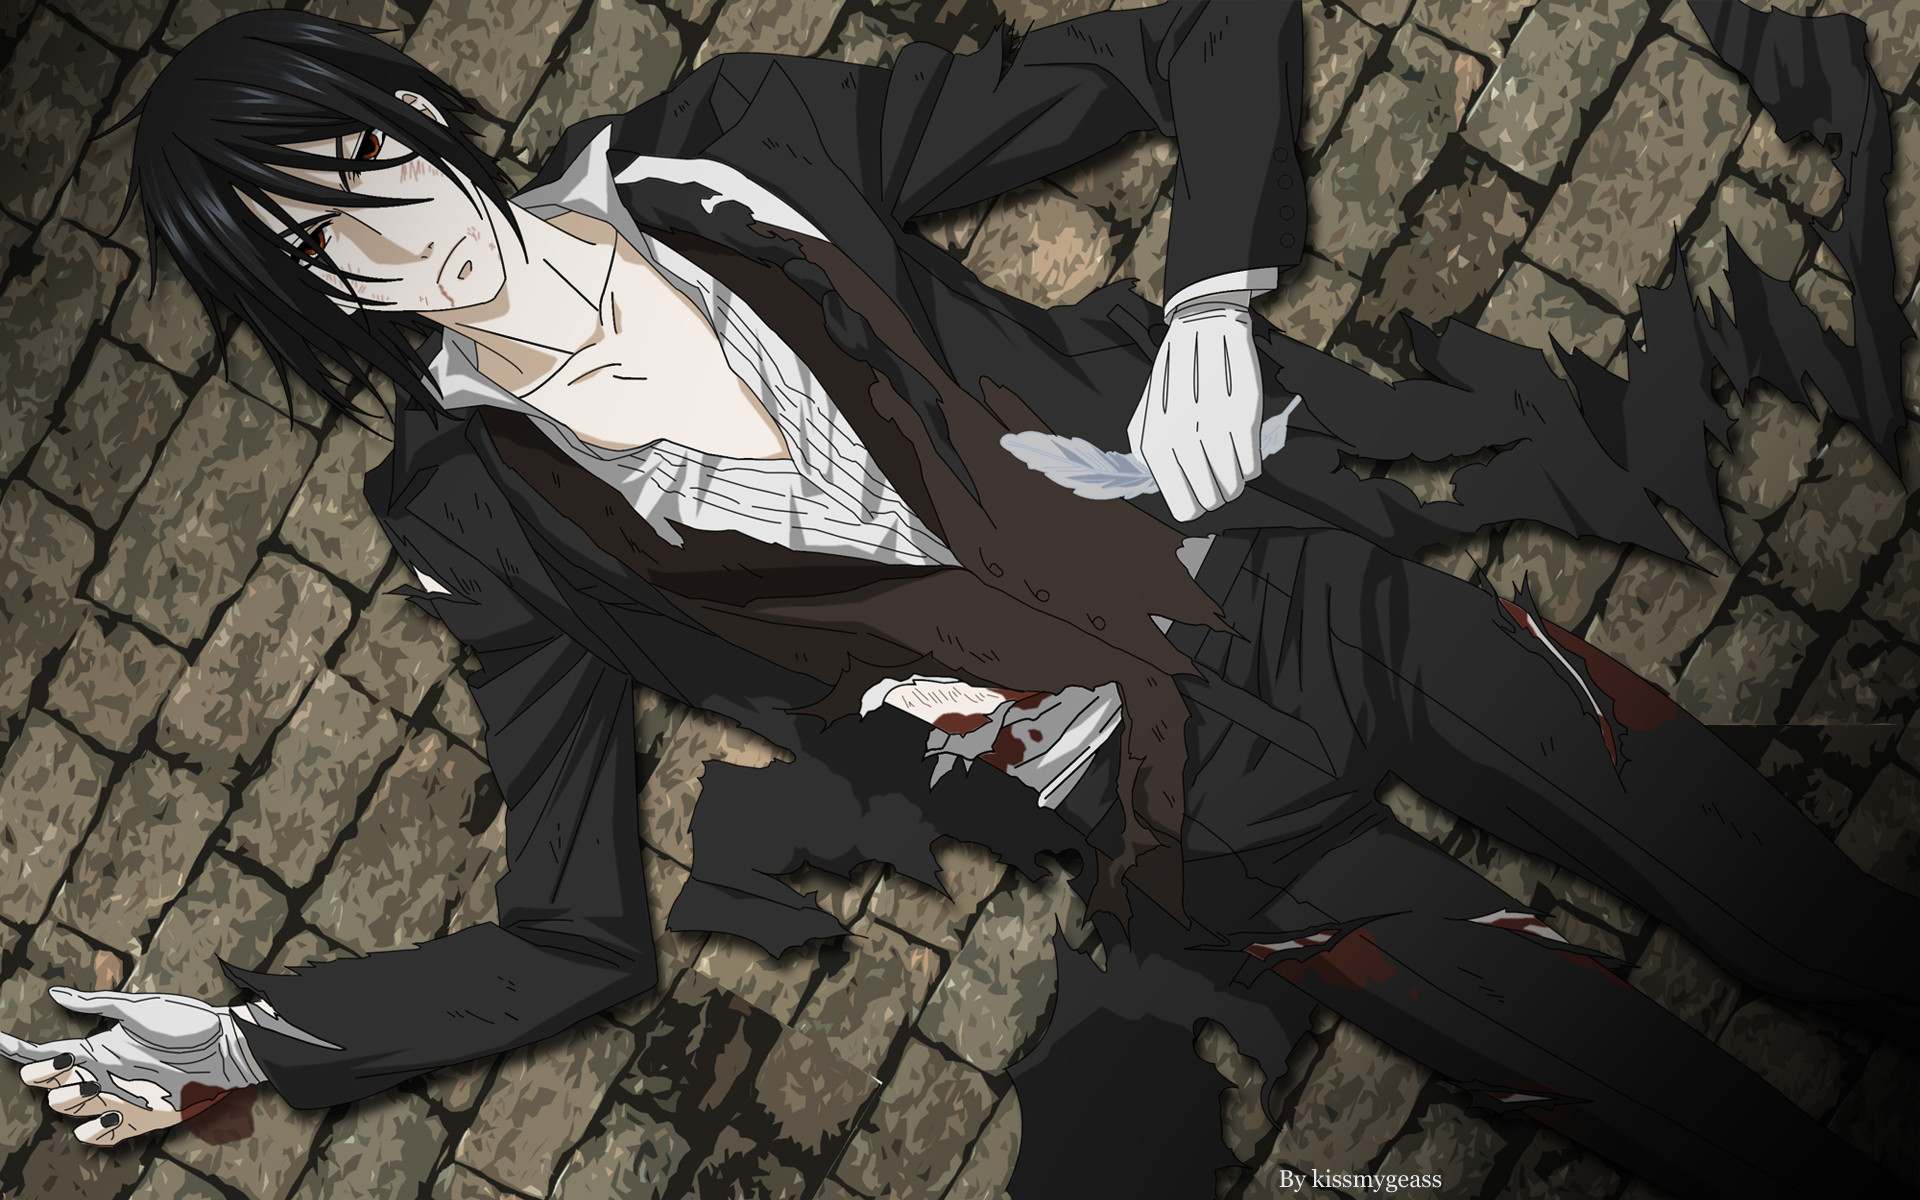 Res: 1920x1200, Tags: Anime, Kissmyglass, Kuroshitsuji, Sebastian Michaelis, Fanart,  deviantART, Wallpaper